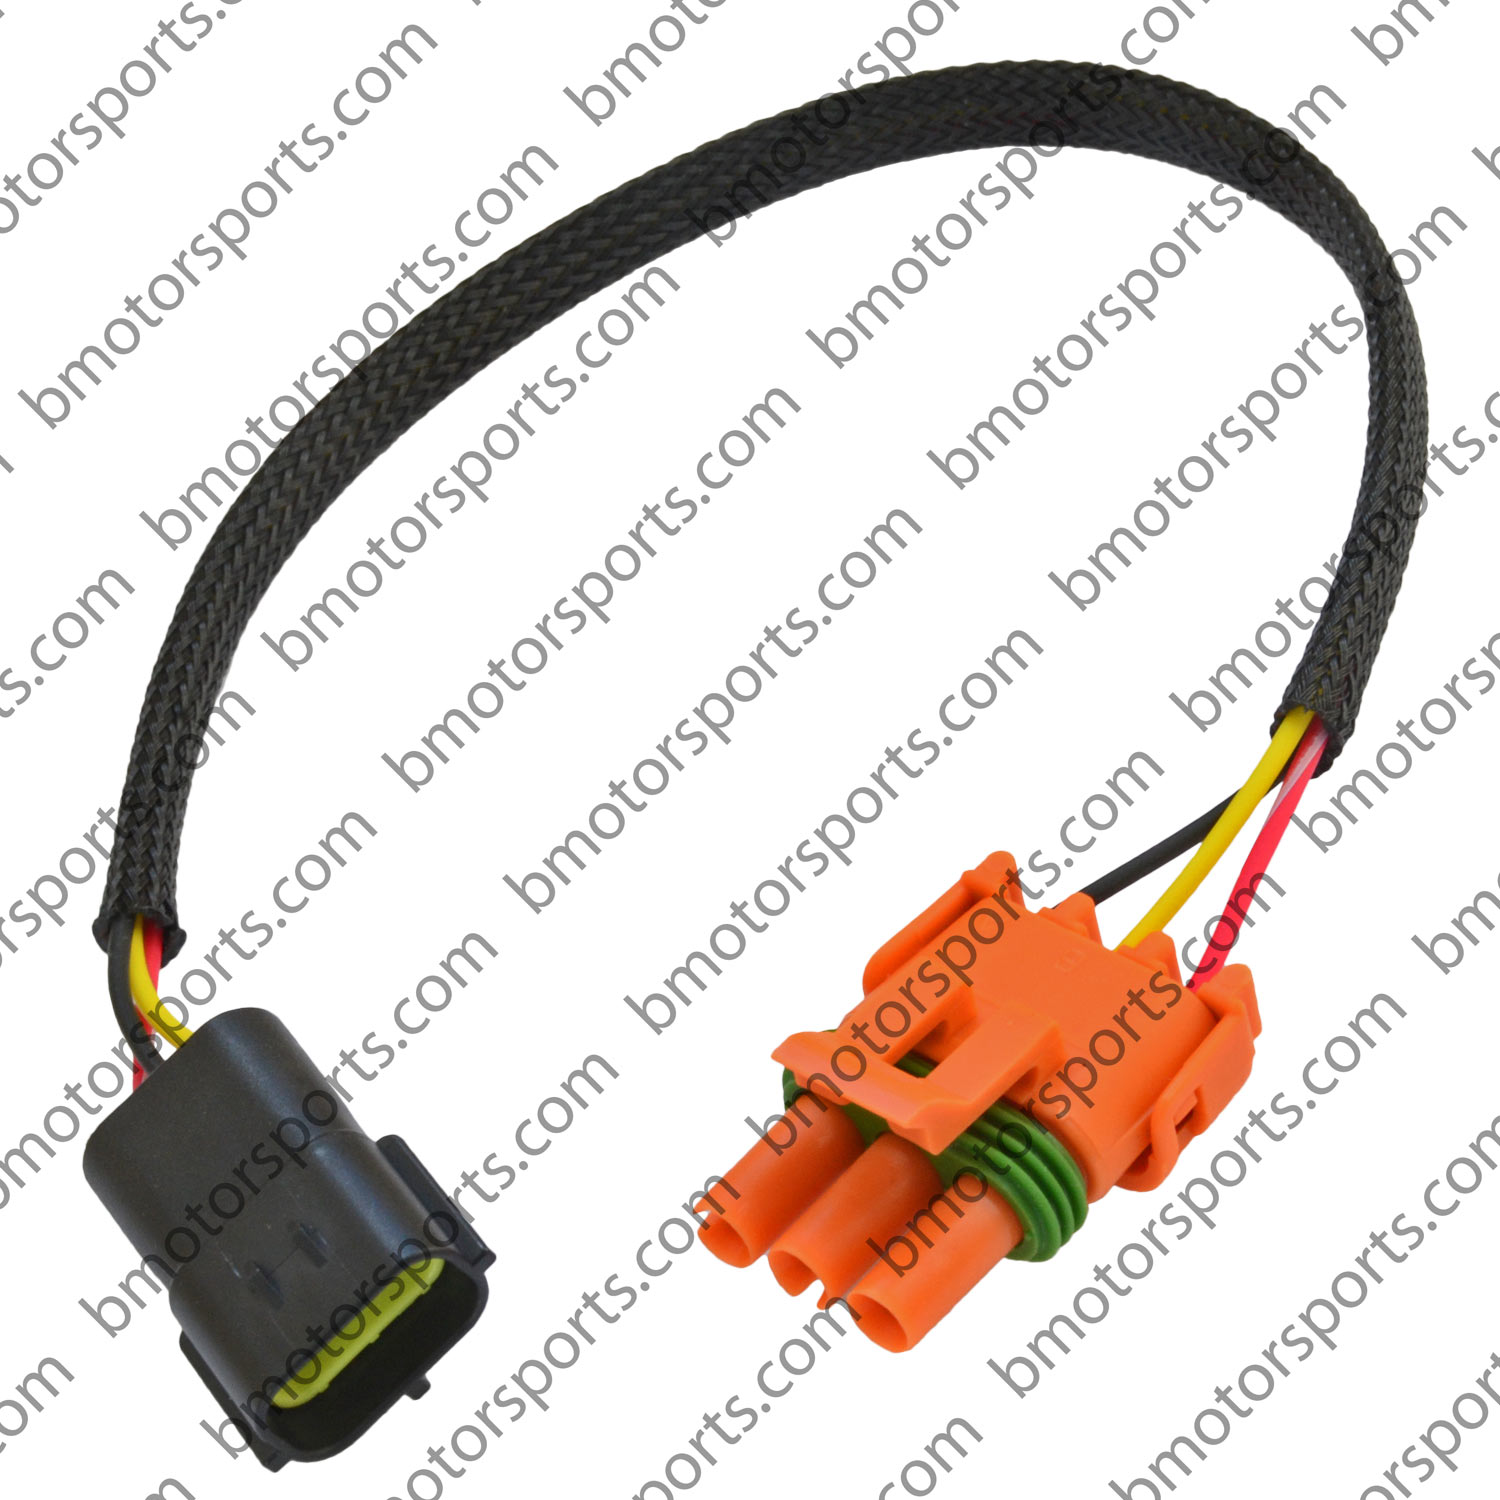 Home Shop New Products Mazda Map To Gm Delphi Packard 2 3 Wiring Harness Adapter Bar